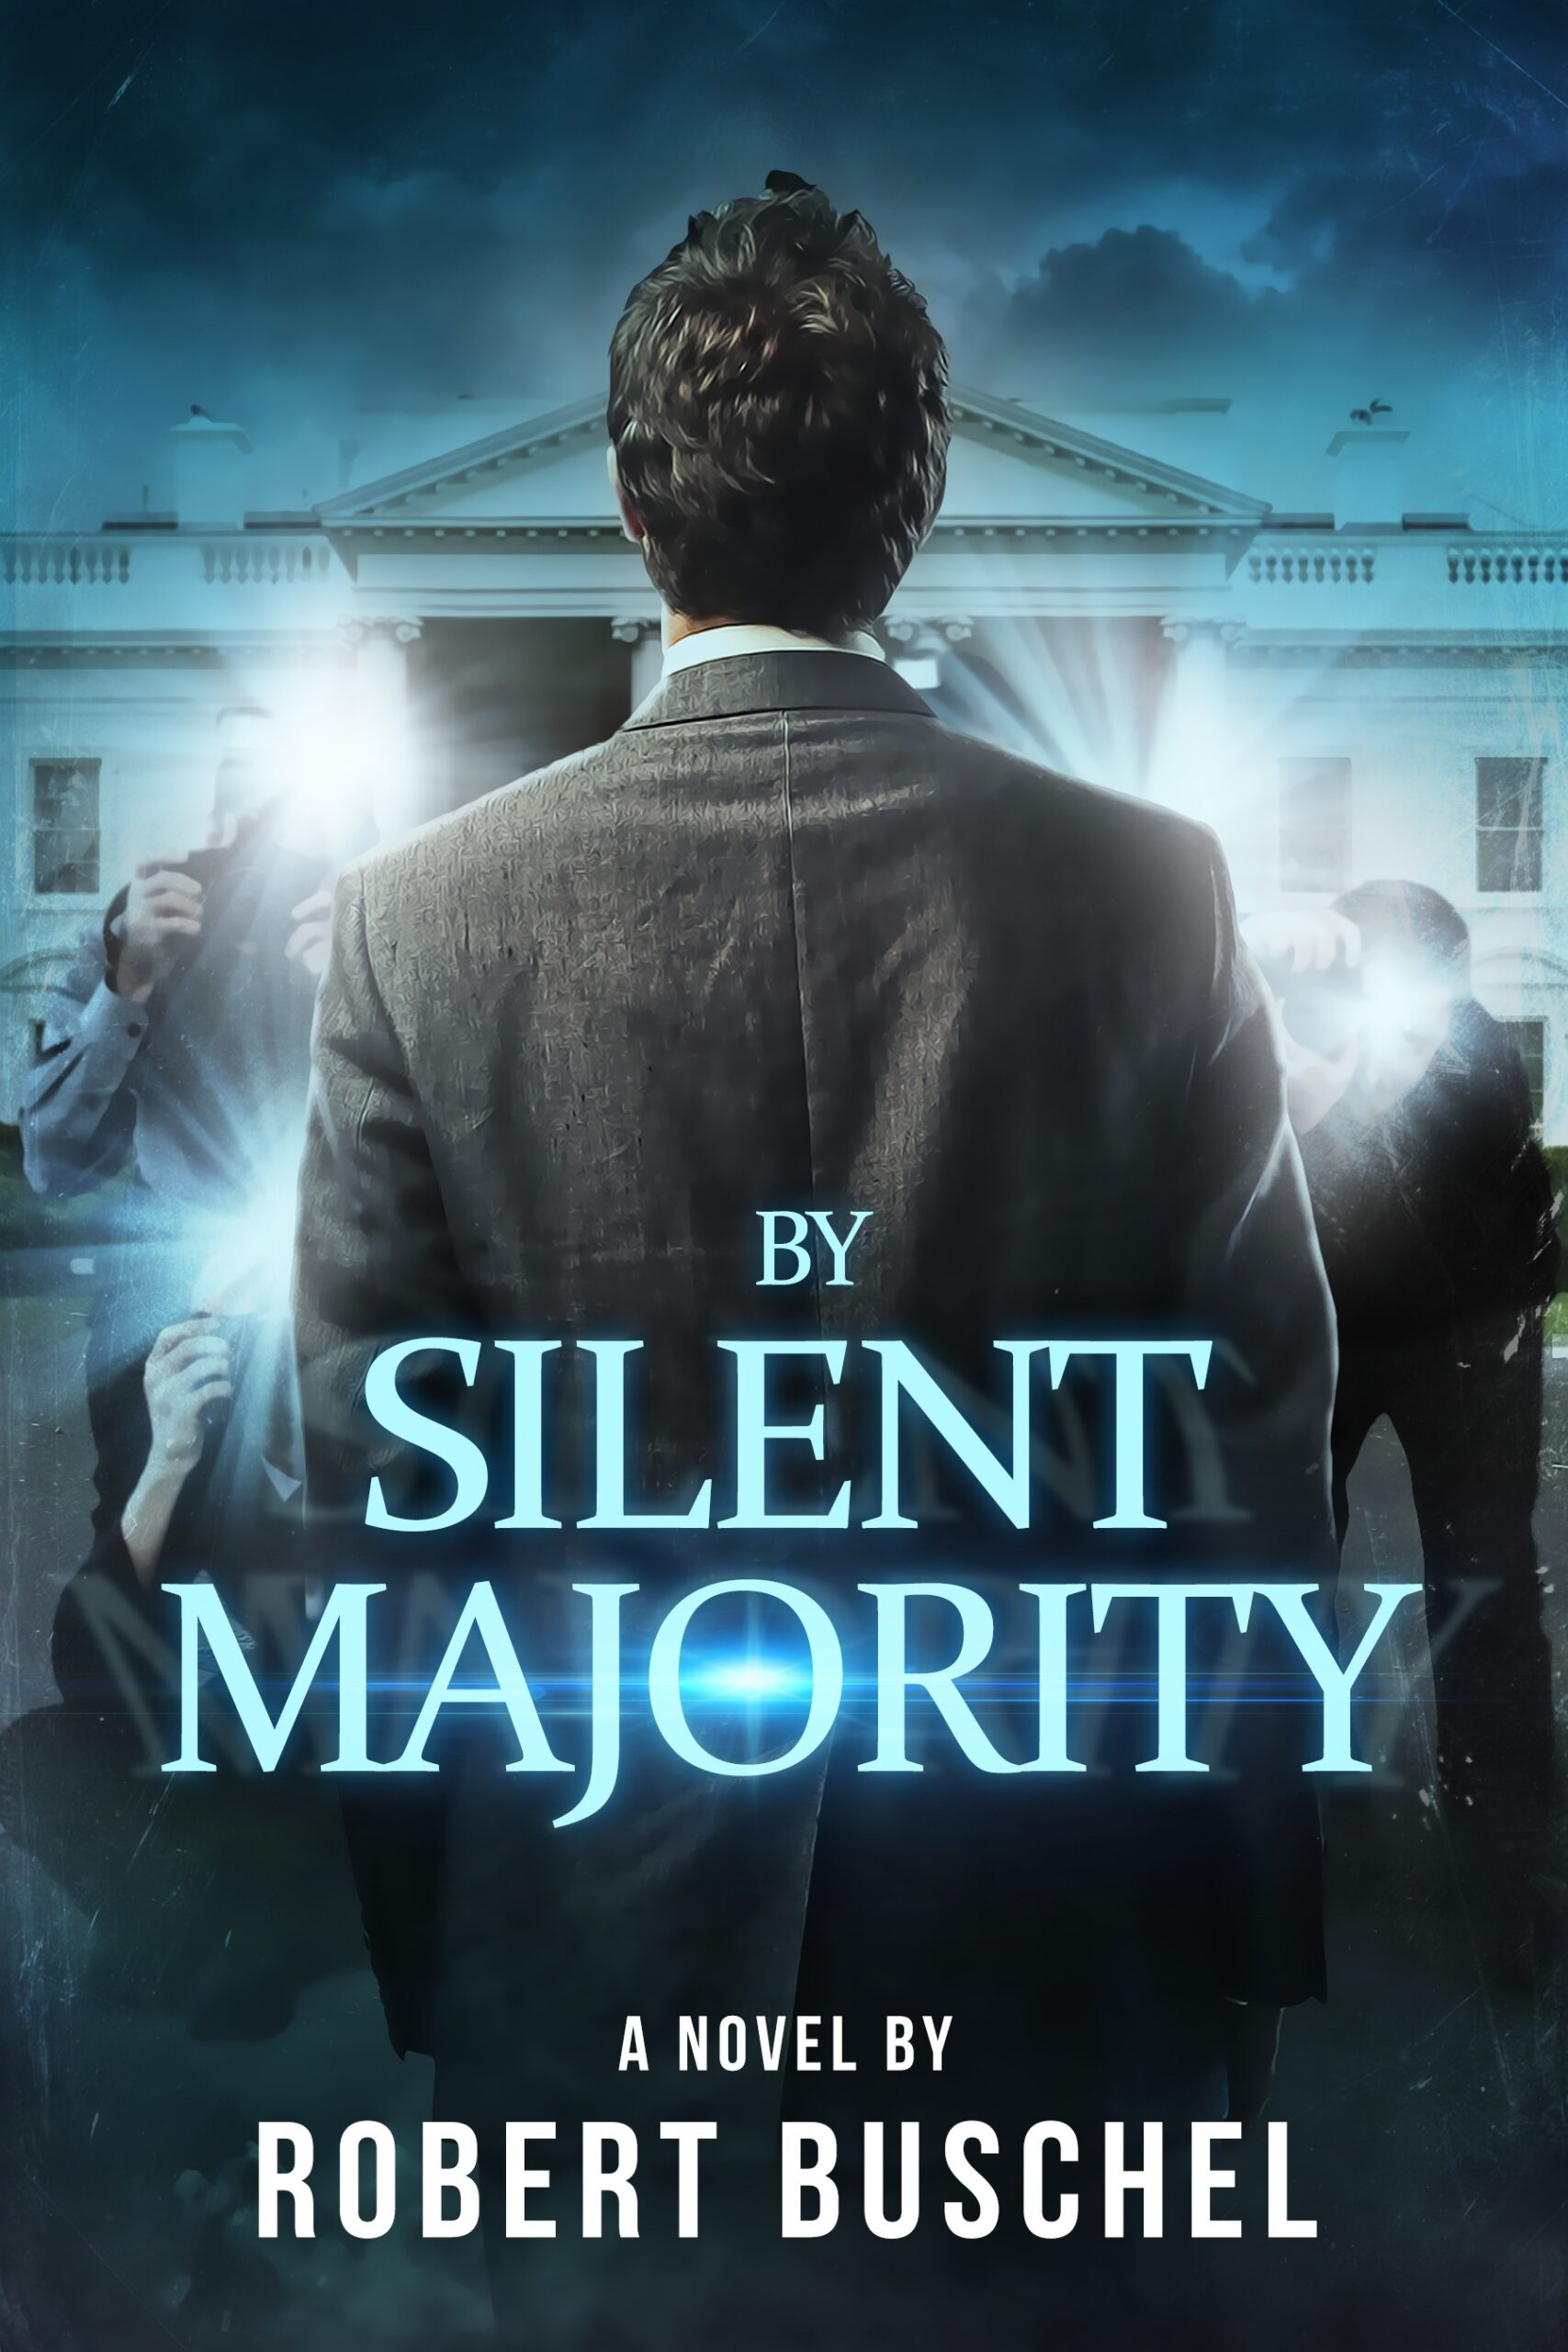 By Silent Majority